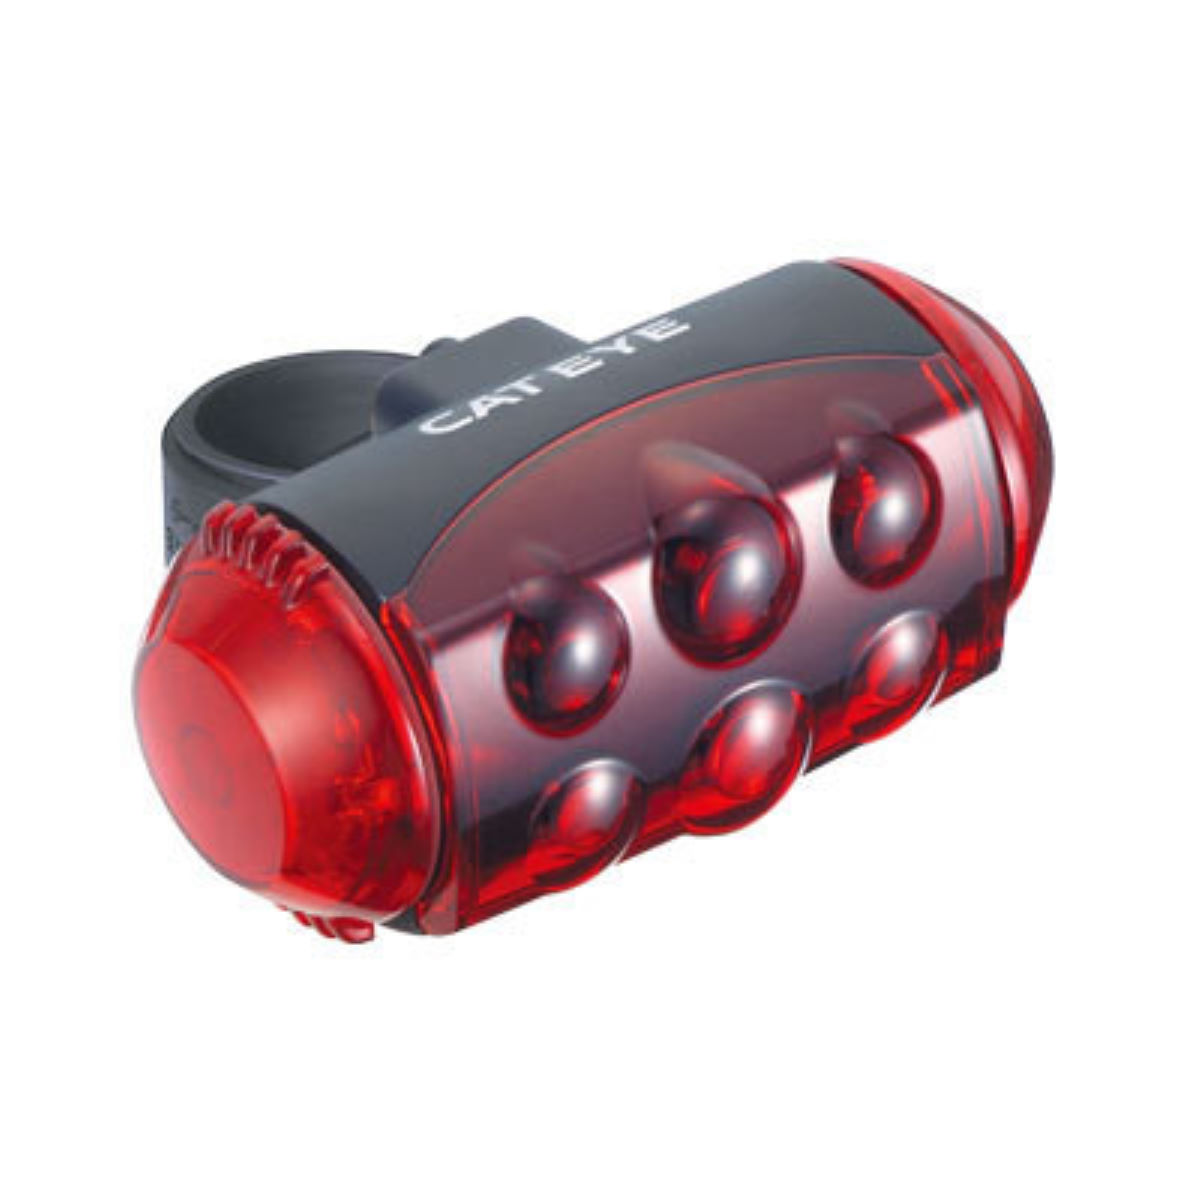 Wiggle | Cateye TL-LD1100 LED Rear Light